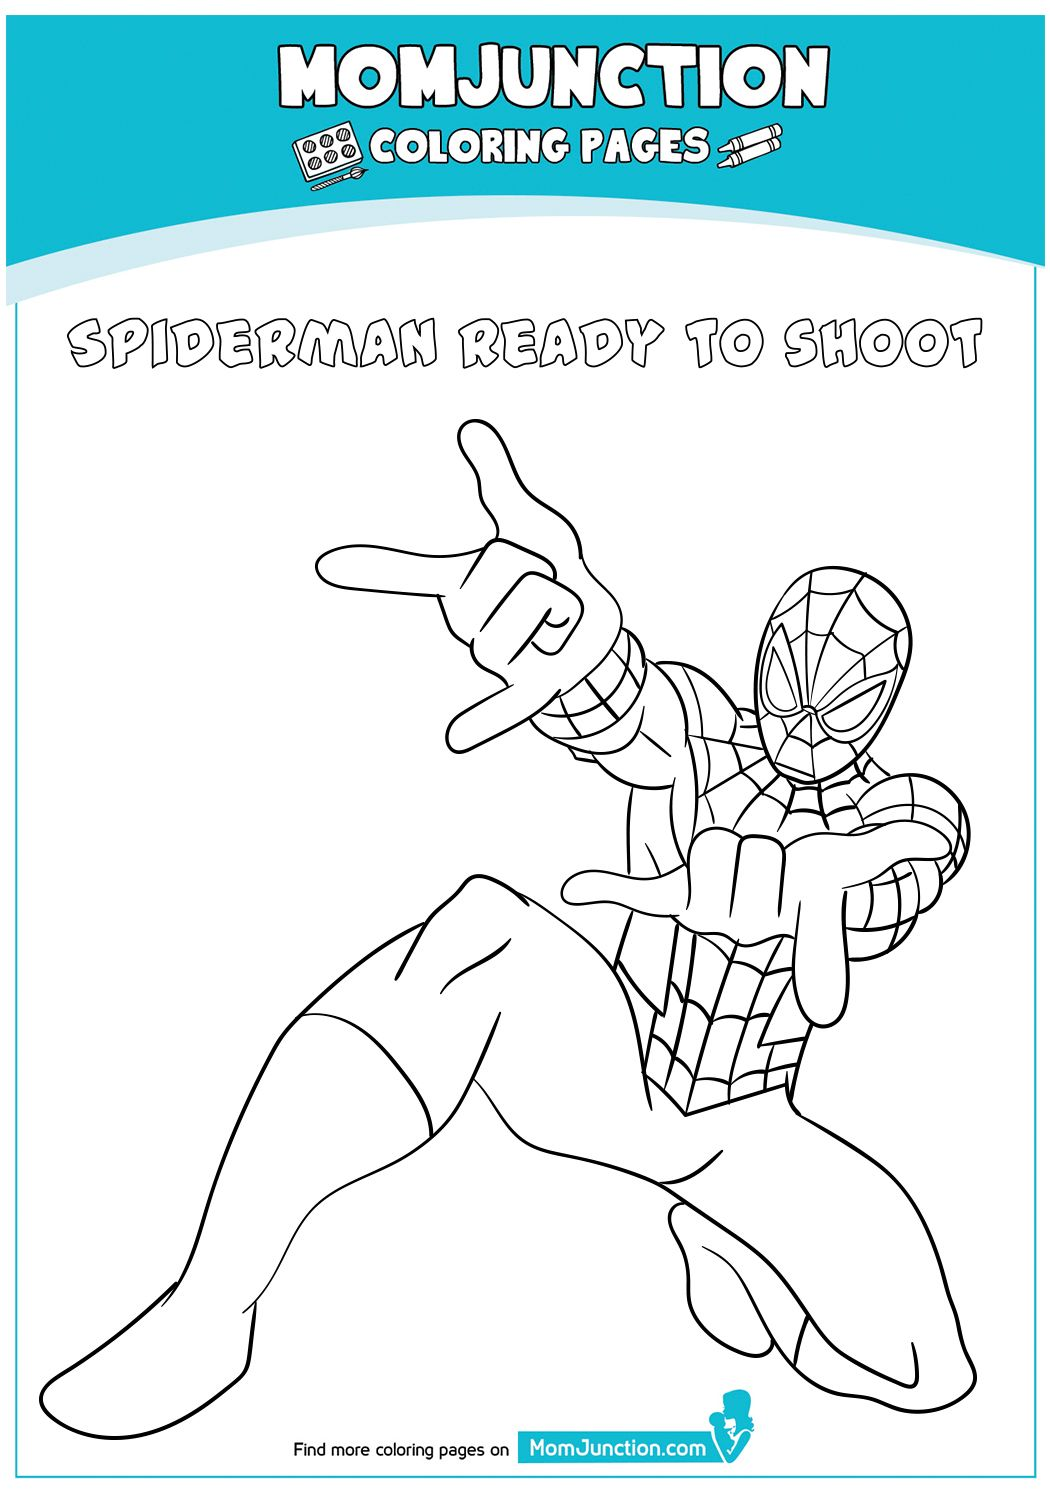 Coloring Page In 2020 Coloring Pages Spiderman Coloring